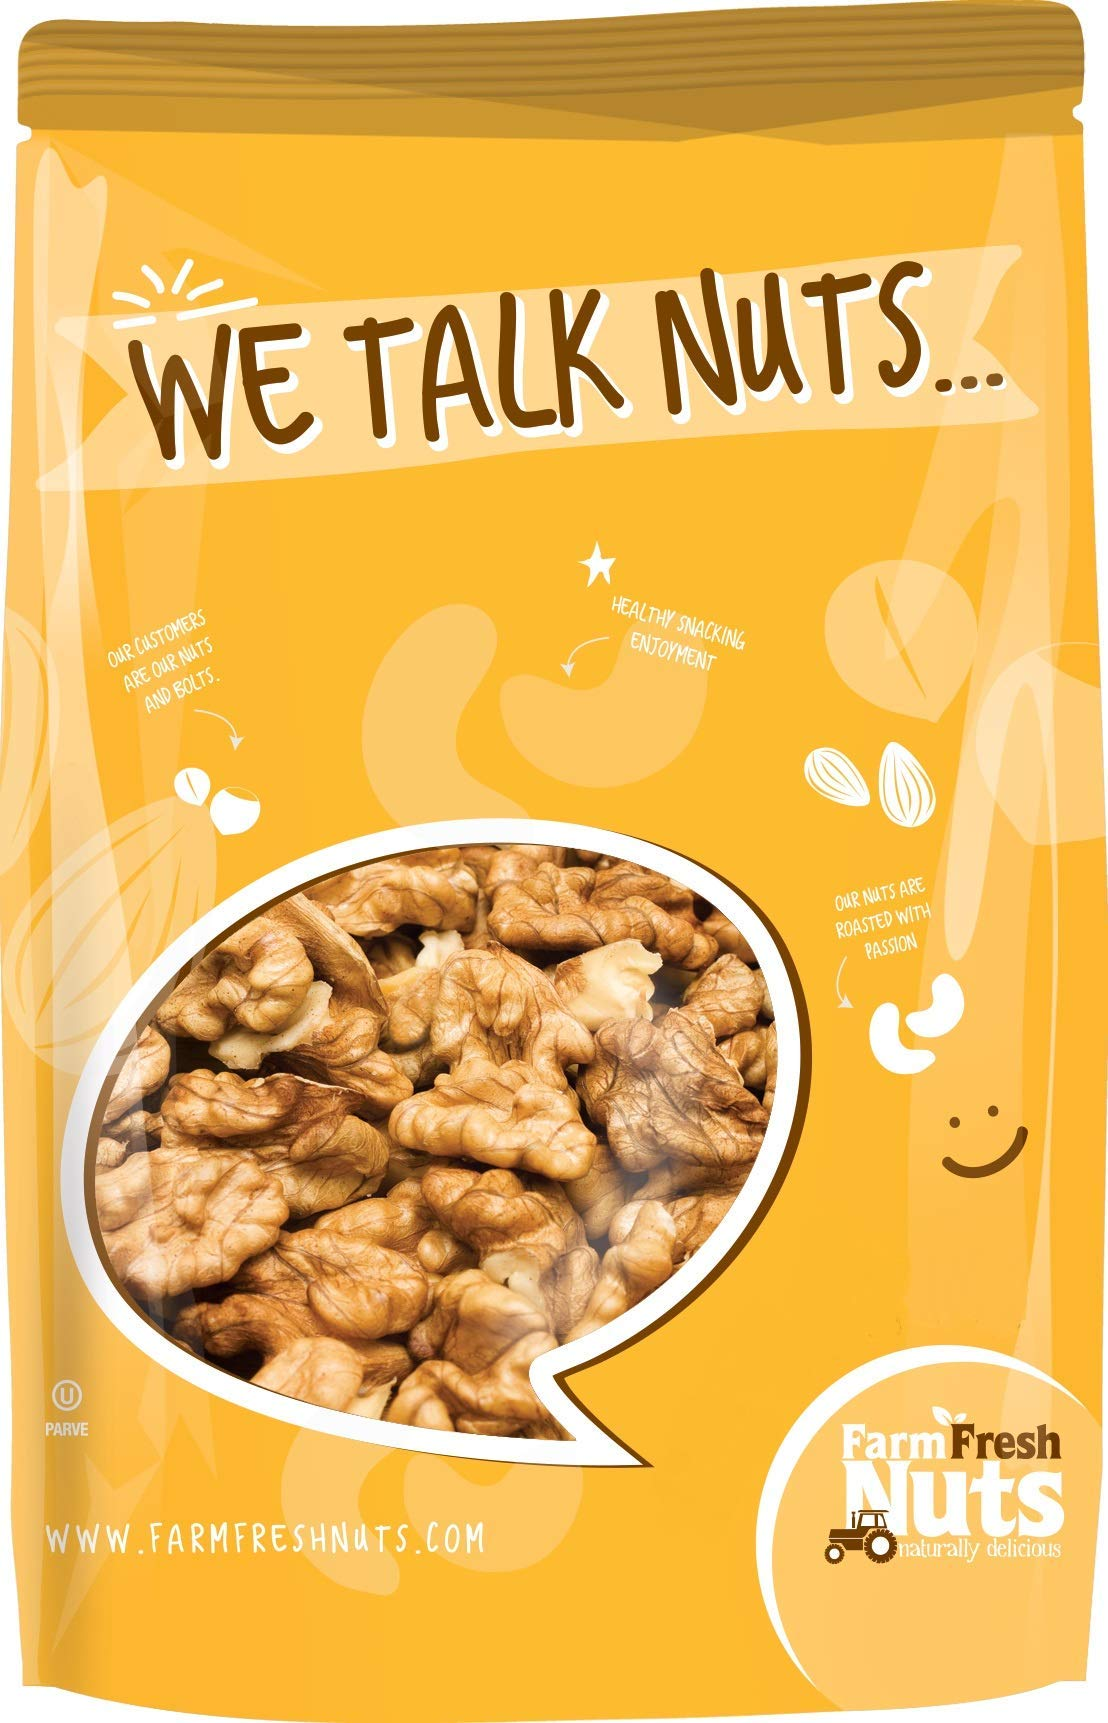 CALIFORNIA WALNUTS Raw ~Compares to Organic Walnuts~ Shelled Halves & Pieces - Great Source of Omega 3 - Super Crunchy - (2 LB) - Farm Fresh Nuts Brand. by Farm Fresh Nuts